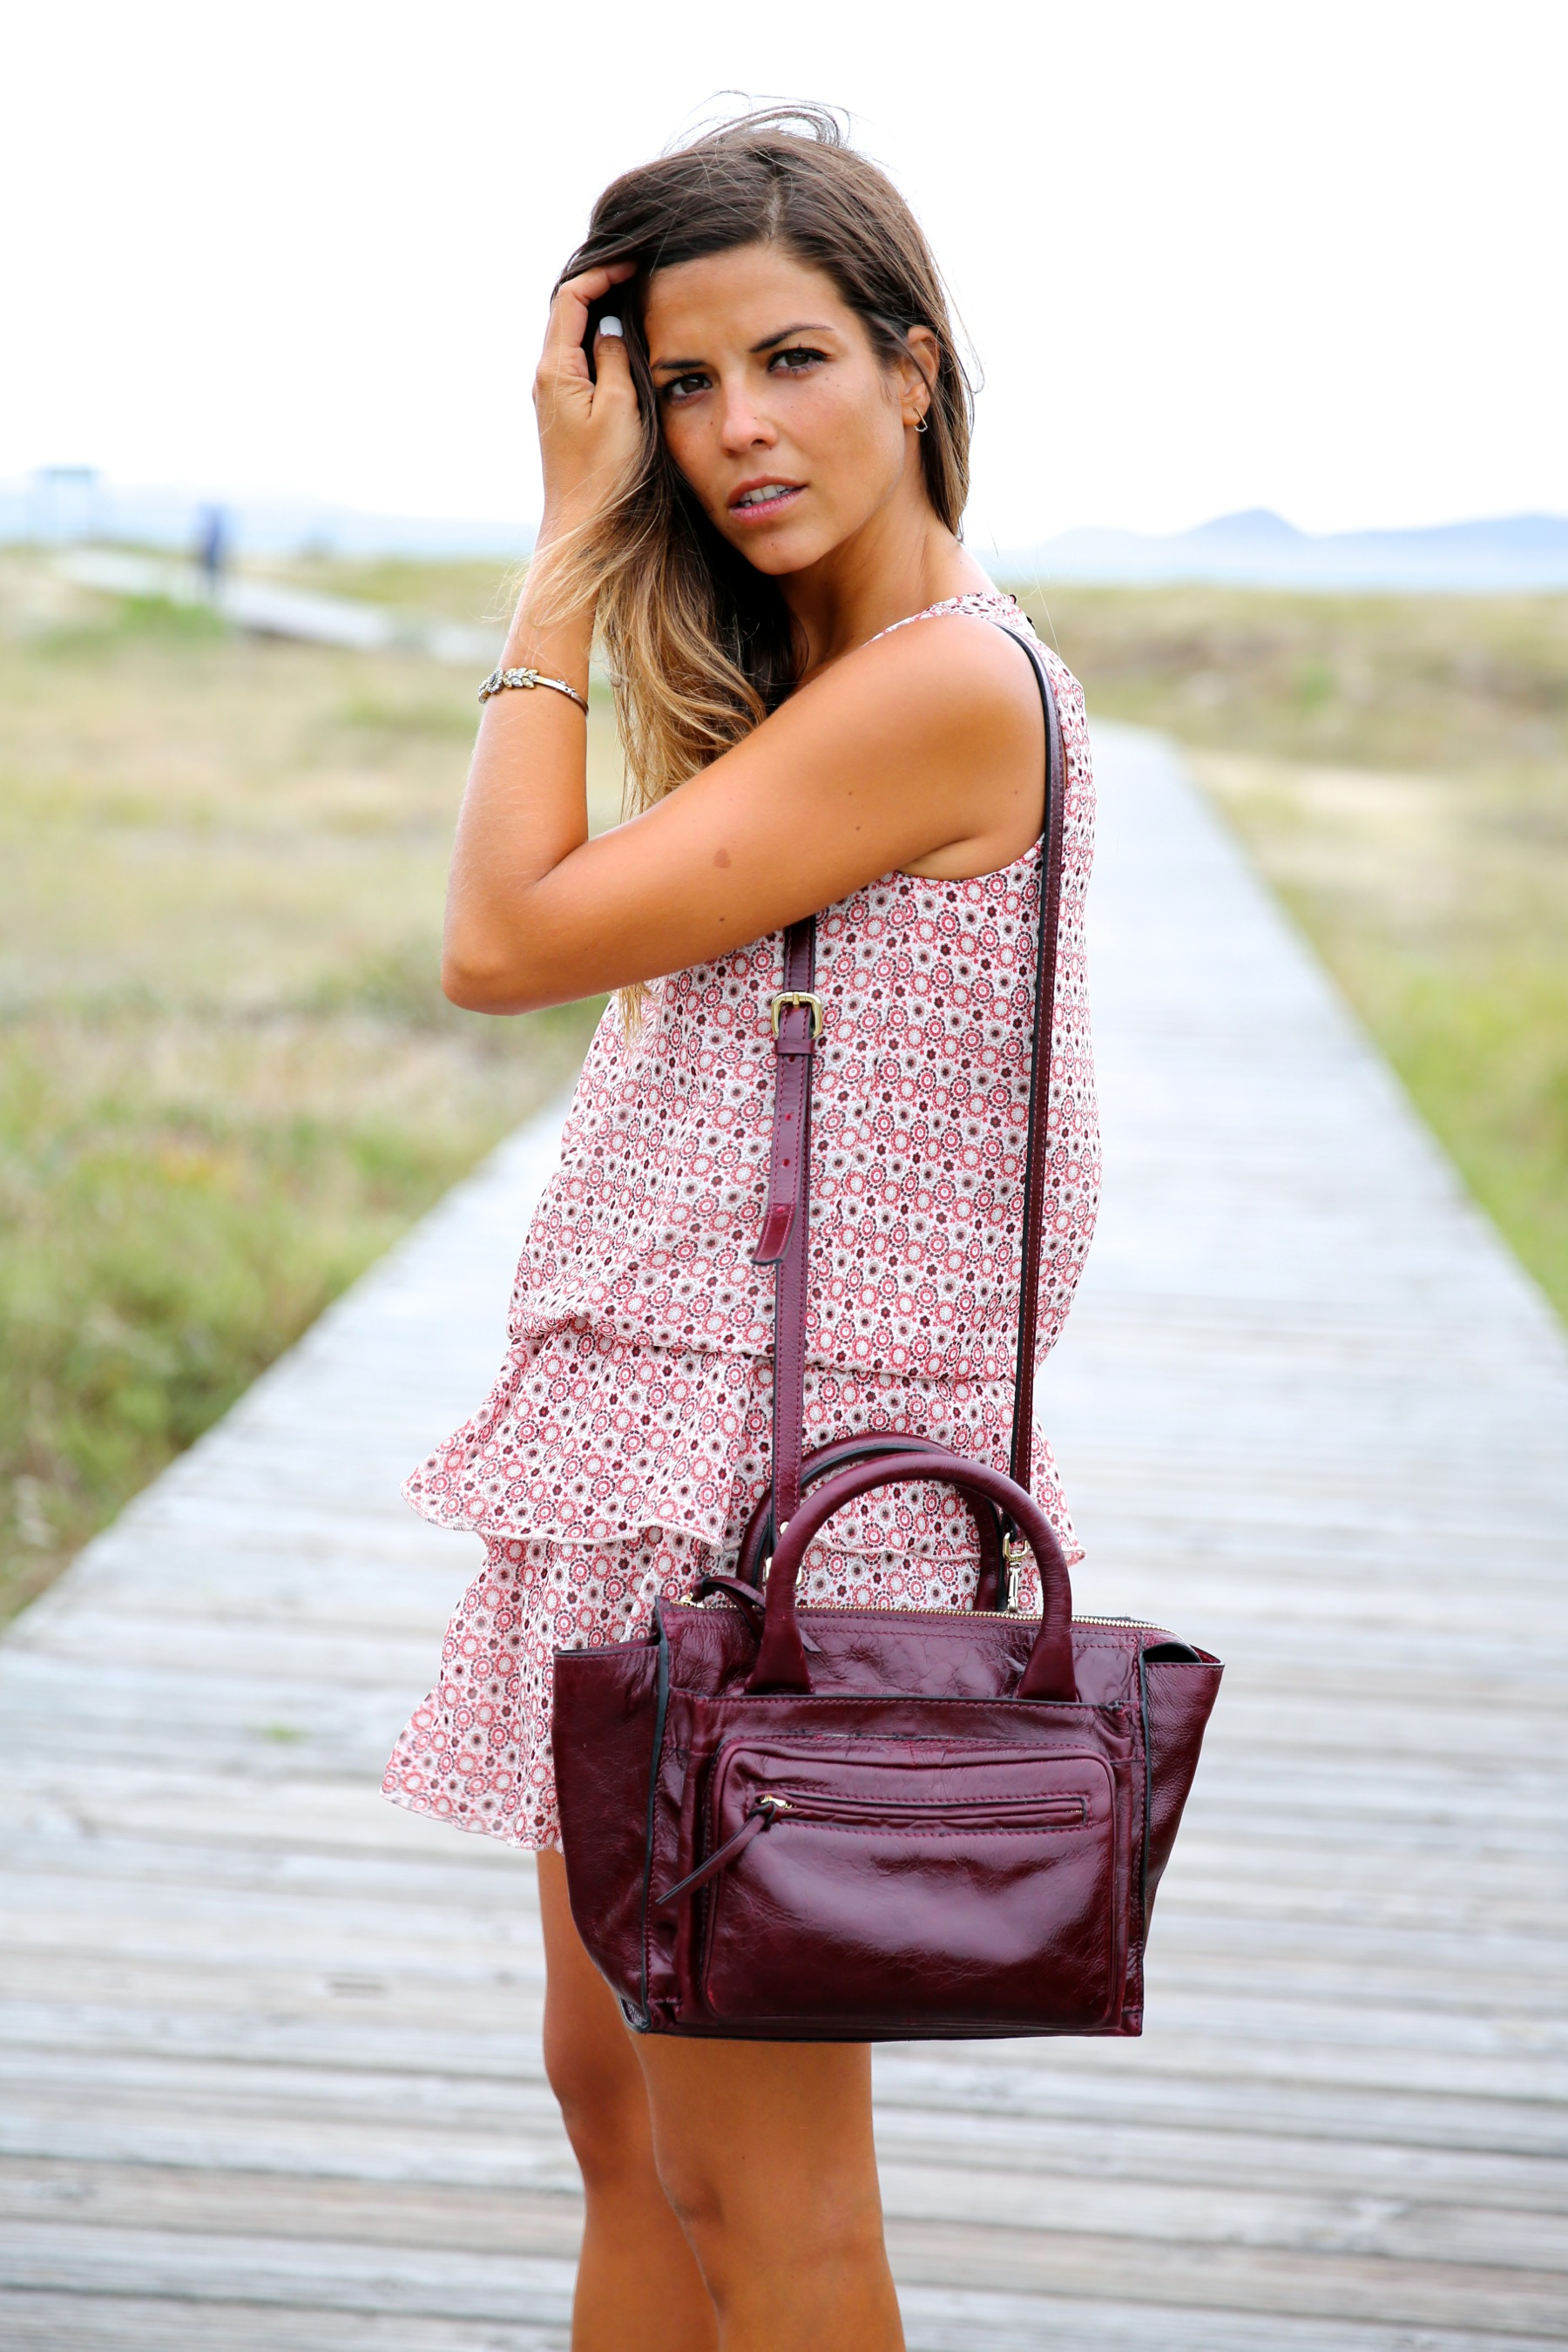 trendy_taste-look-outfit-street_style-ootd-blog-blogger-fashion_spain-moda_españa-boho-beach-playa-galicia-vestido-dress-sandalias-sandals-4